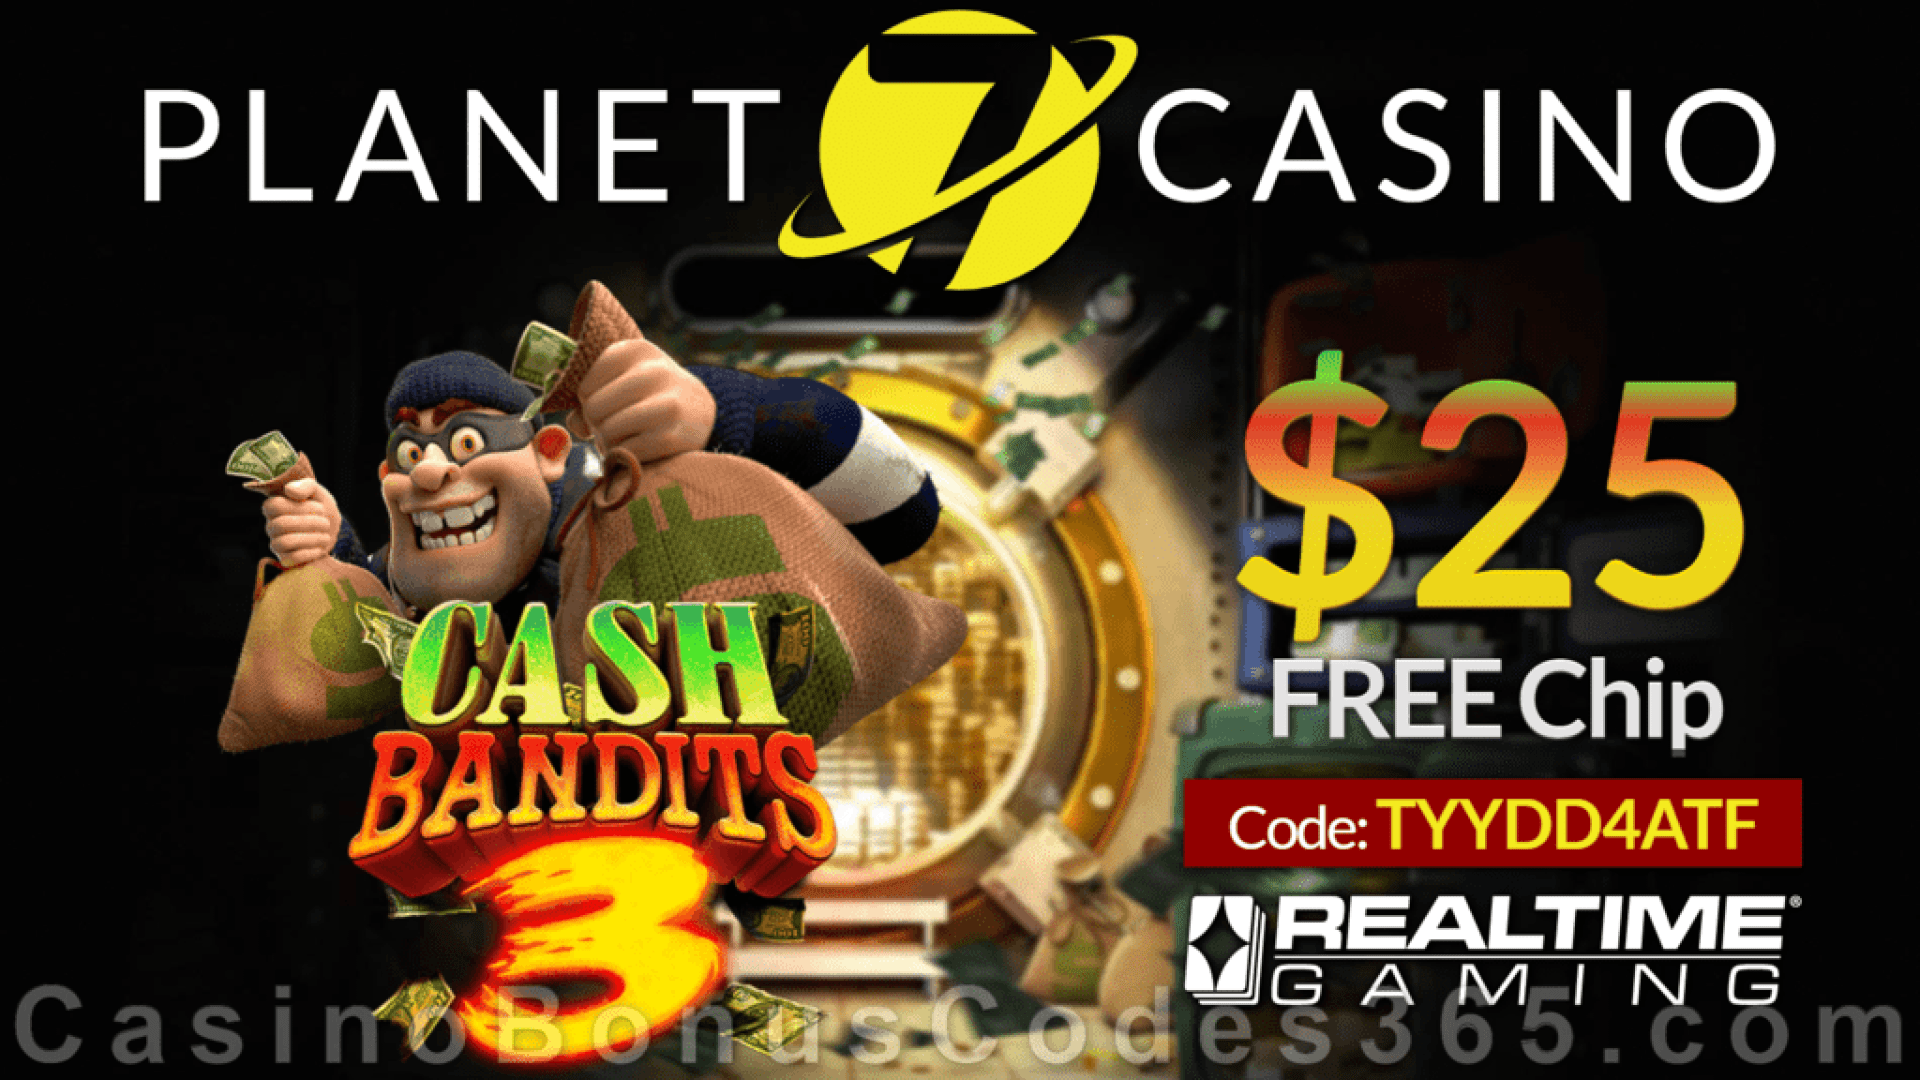 Planet 7 Casino New RTG Game  Cash Bandits 3 Special $25 FREE Chip No Deposit Deal